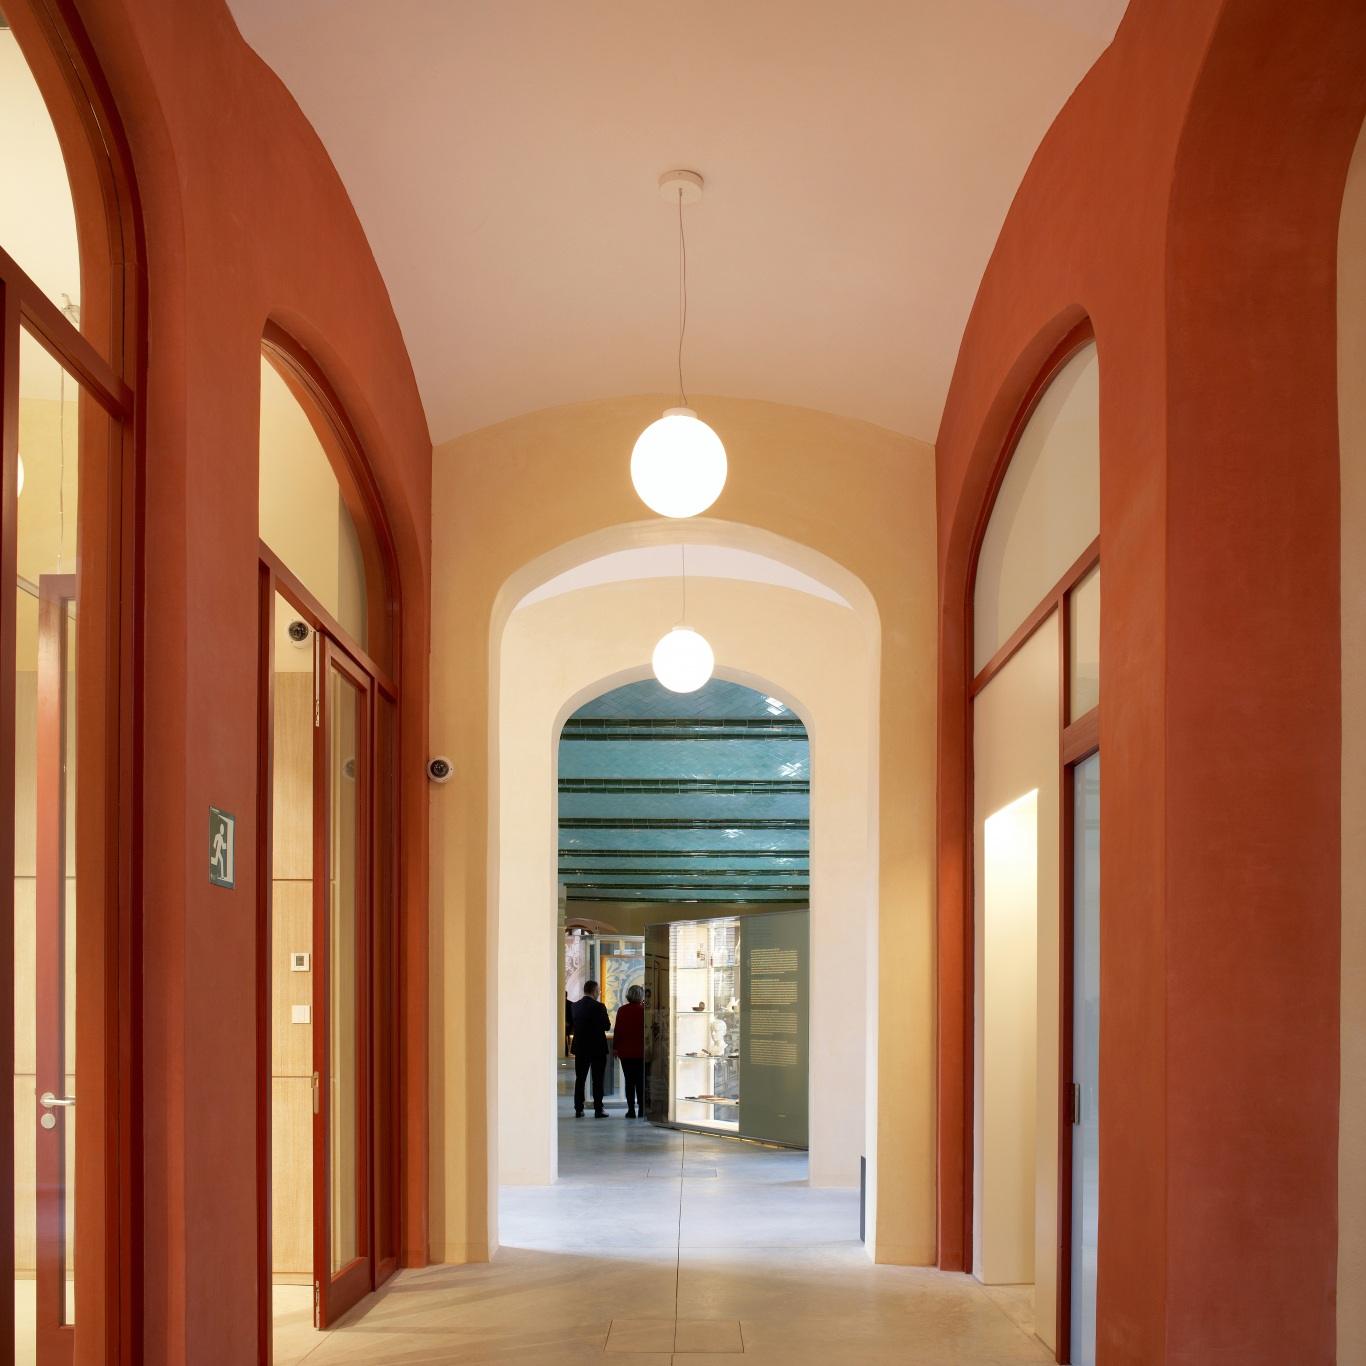 Hospital of the Santa Creu i Sant Pau. Access to the medicine exhibition. Arches on red and yellow painted wall.